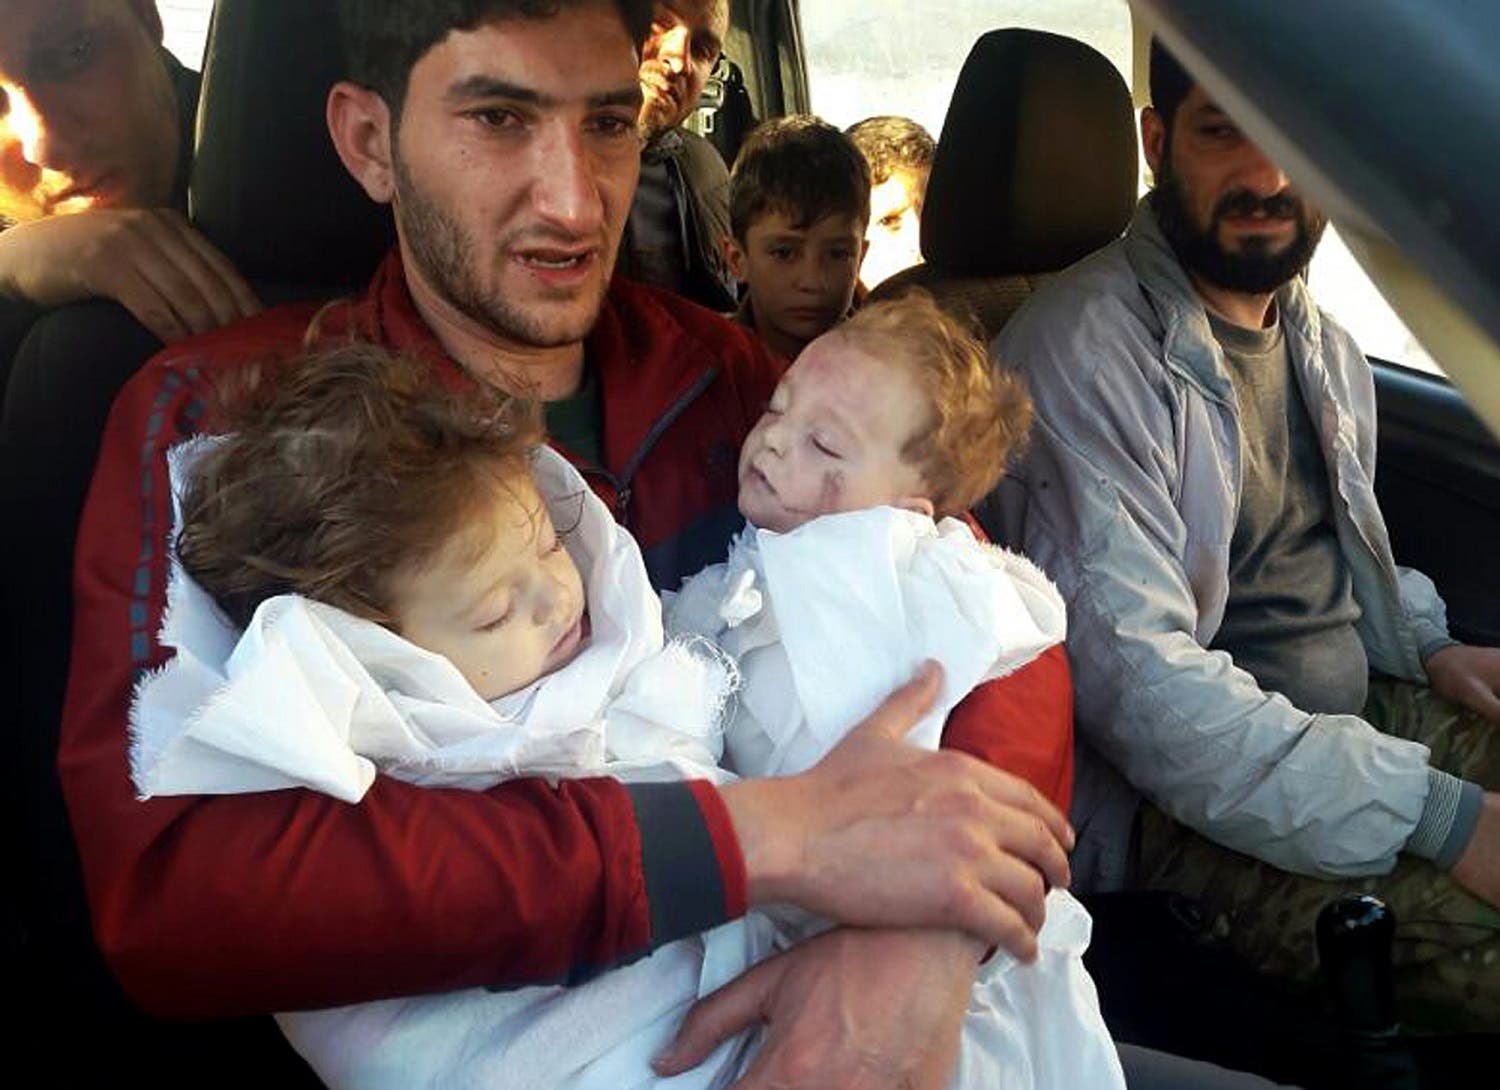 Abdul-Hamid Alyousef holds his twin babies who were killed during a suspected chemical weapons attack, in Khan Sheikhoun in Idlib. (AP)